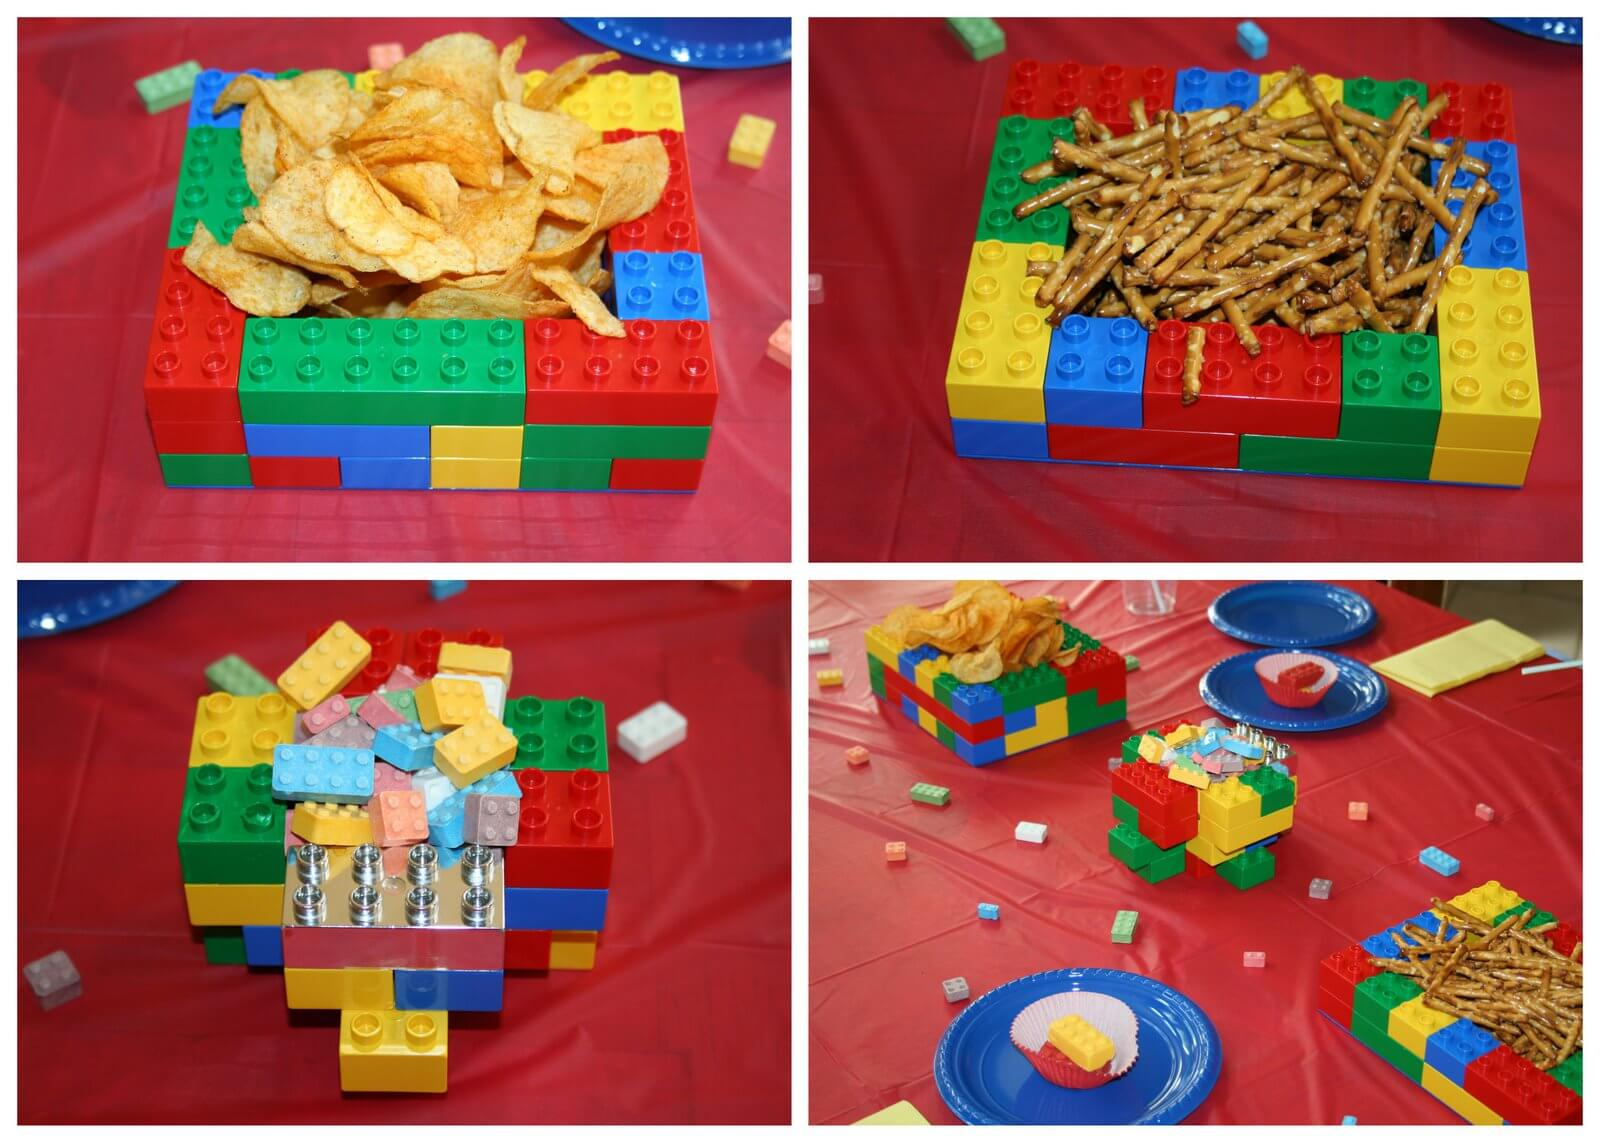 ... meal and they were topped with Lego chocolates made in my Lego mold